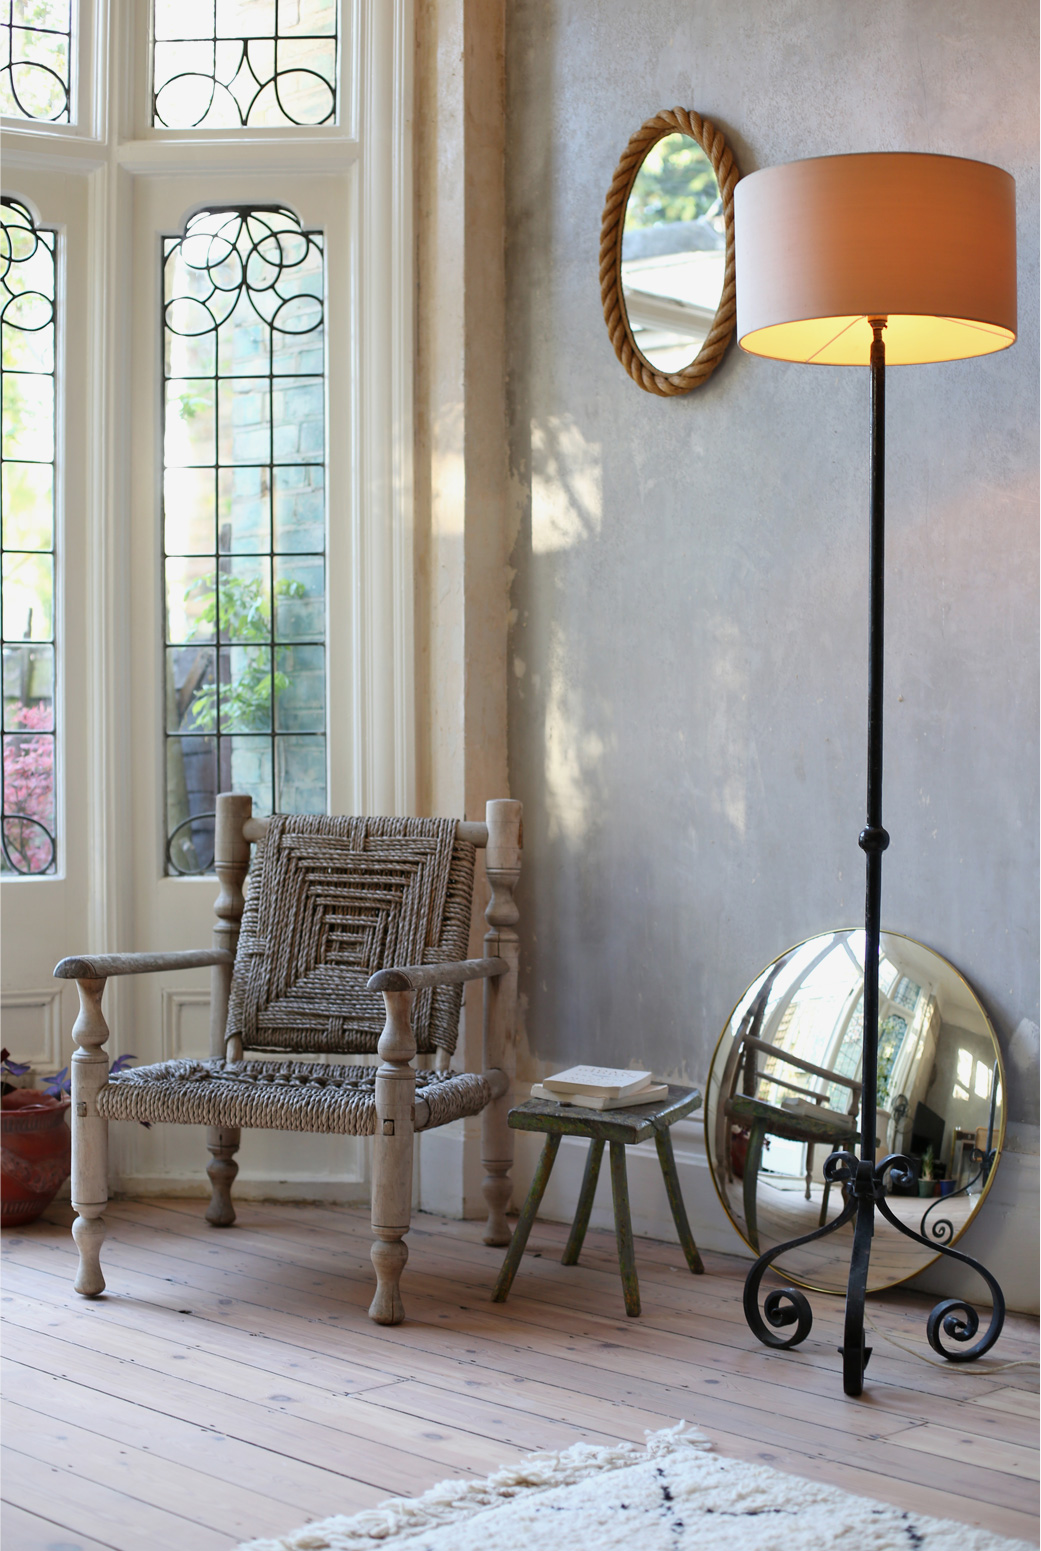 Bring the outside in, beautiful leaded windows in Hannah's flat featuring a mid-cenury rope chair and a wrought iron table lamp.